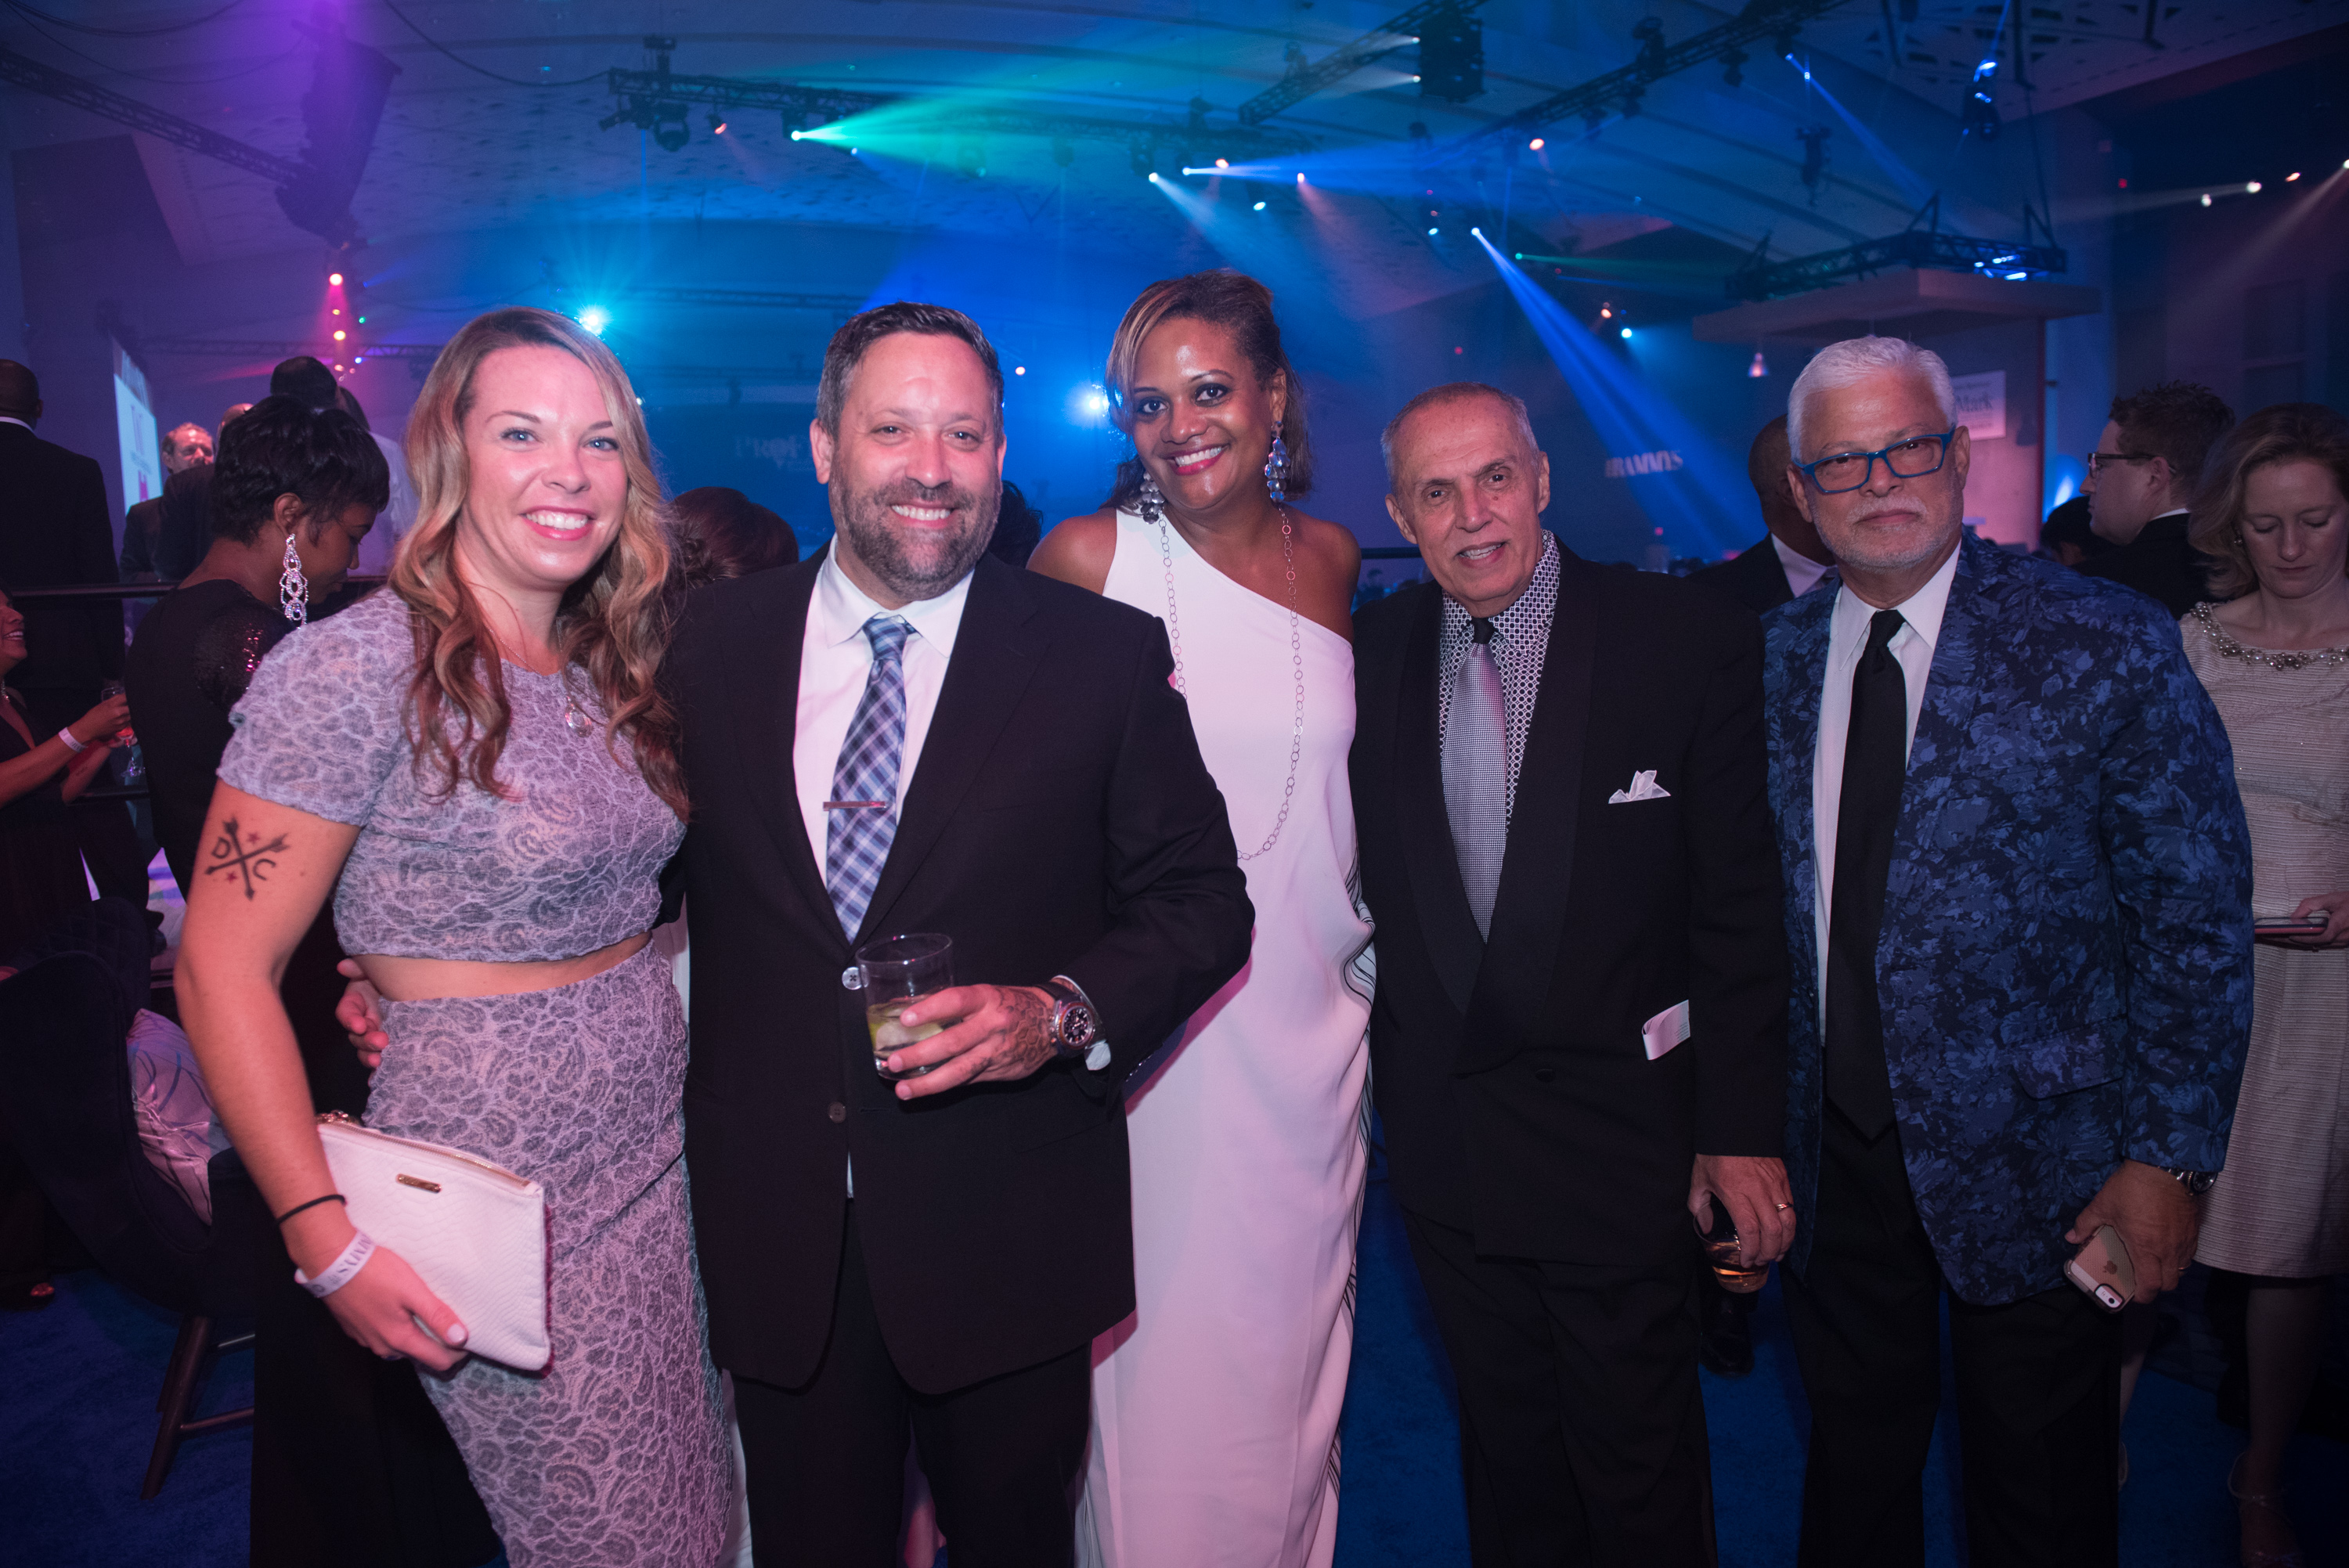 Chef Mike Isabella greeted guests at the Events DC Lounge during the 2017 RAMMY Awards Gala. From L-R: Ashley Forrester (Events DC), Chef Mike Isabella, Chinyere Hubbard (Events DC), Jay Haddock Ortiz (Events DC), and Hector Torres. (Image: Courtesy Events DC)